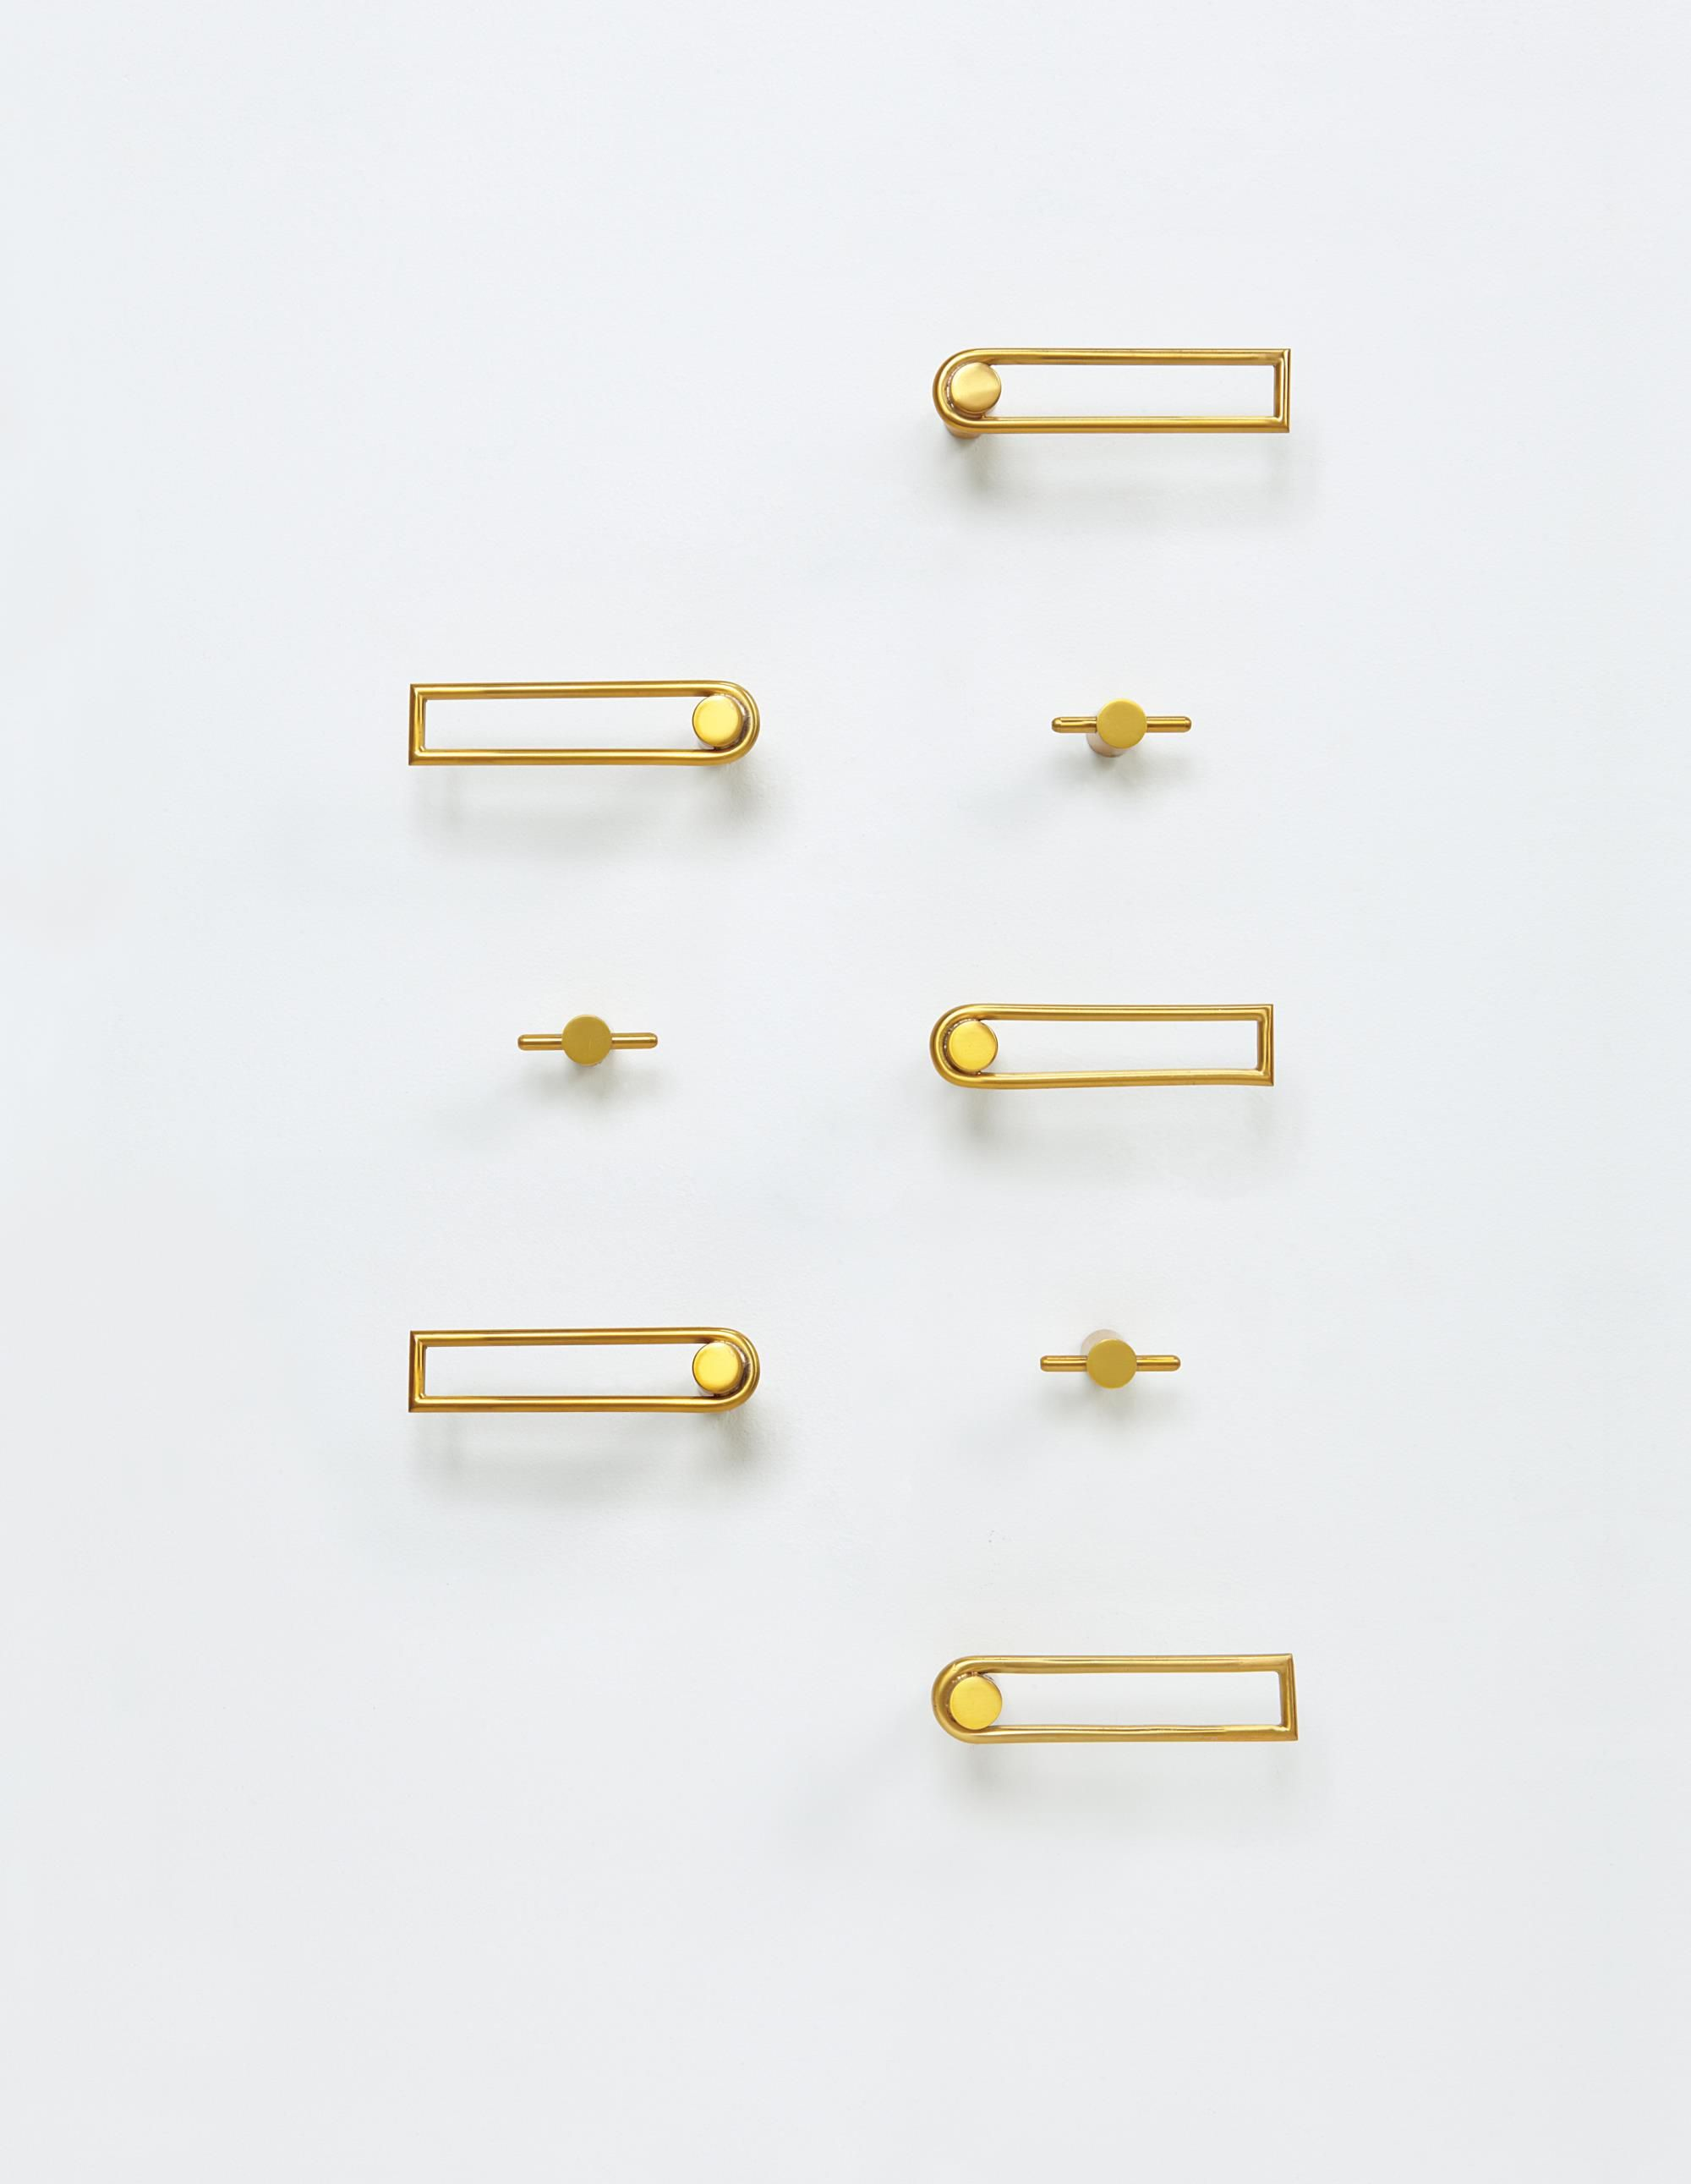 JEAN ROYÈRE Set Of Door Hardware, 1950s Lacquered Steel. 4 3/4 In. (12.1  Cm) Wide Comprising 9 Lever Handles, 3 Turn Pieces, 14 Rosettes